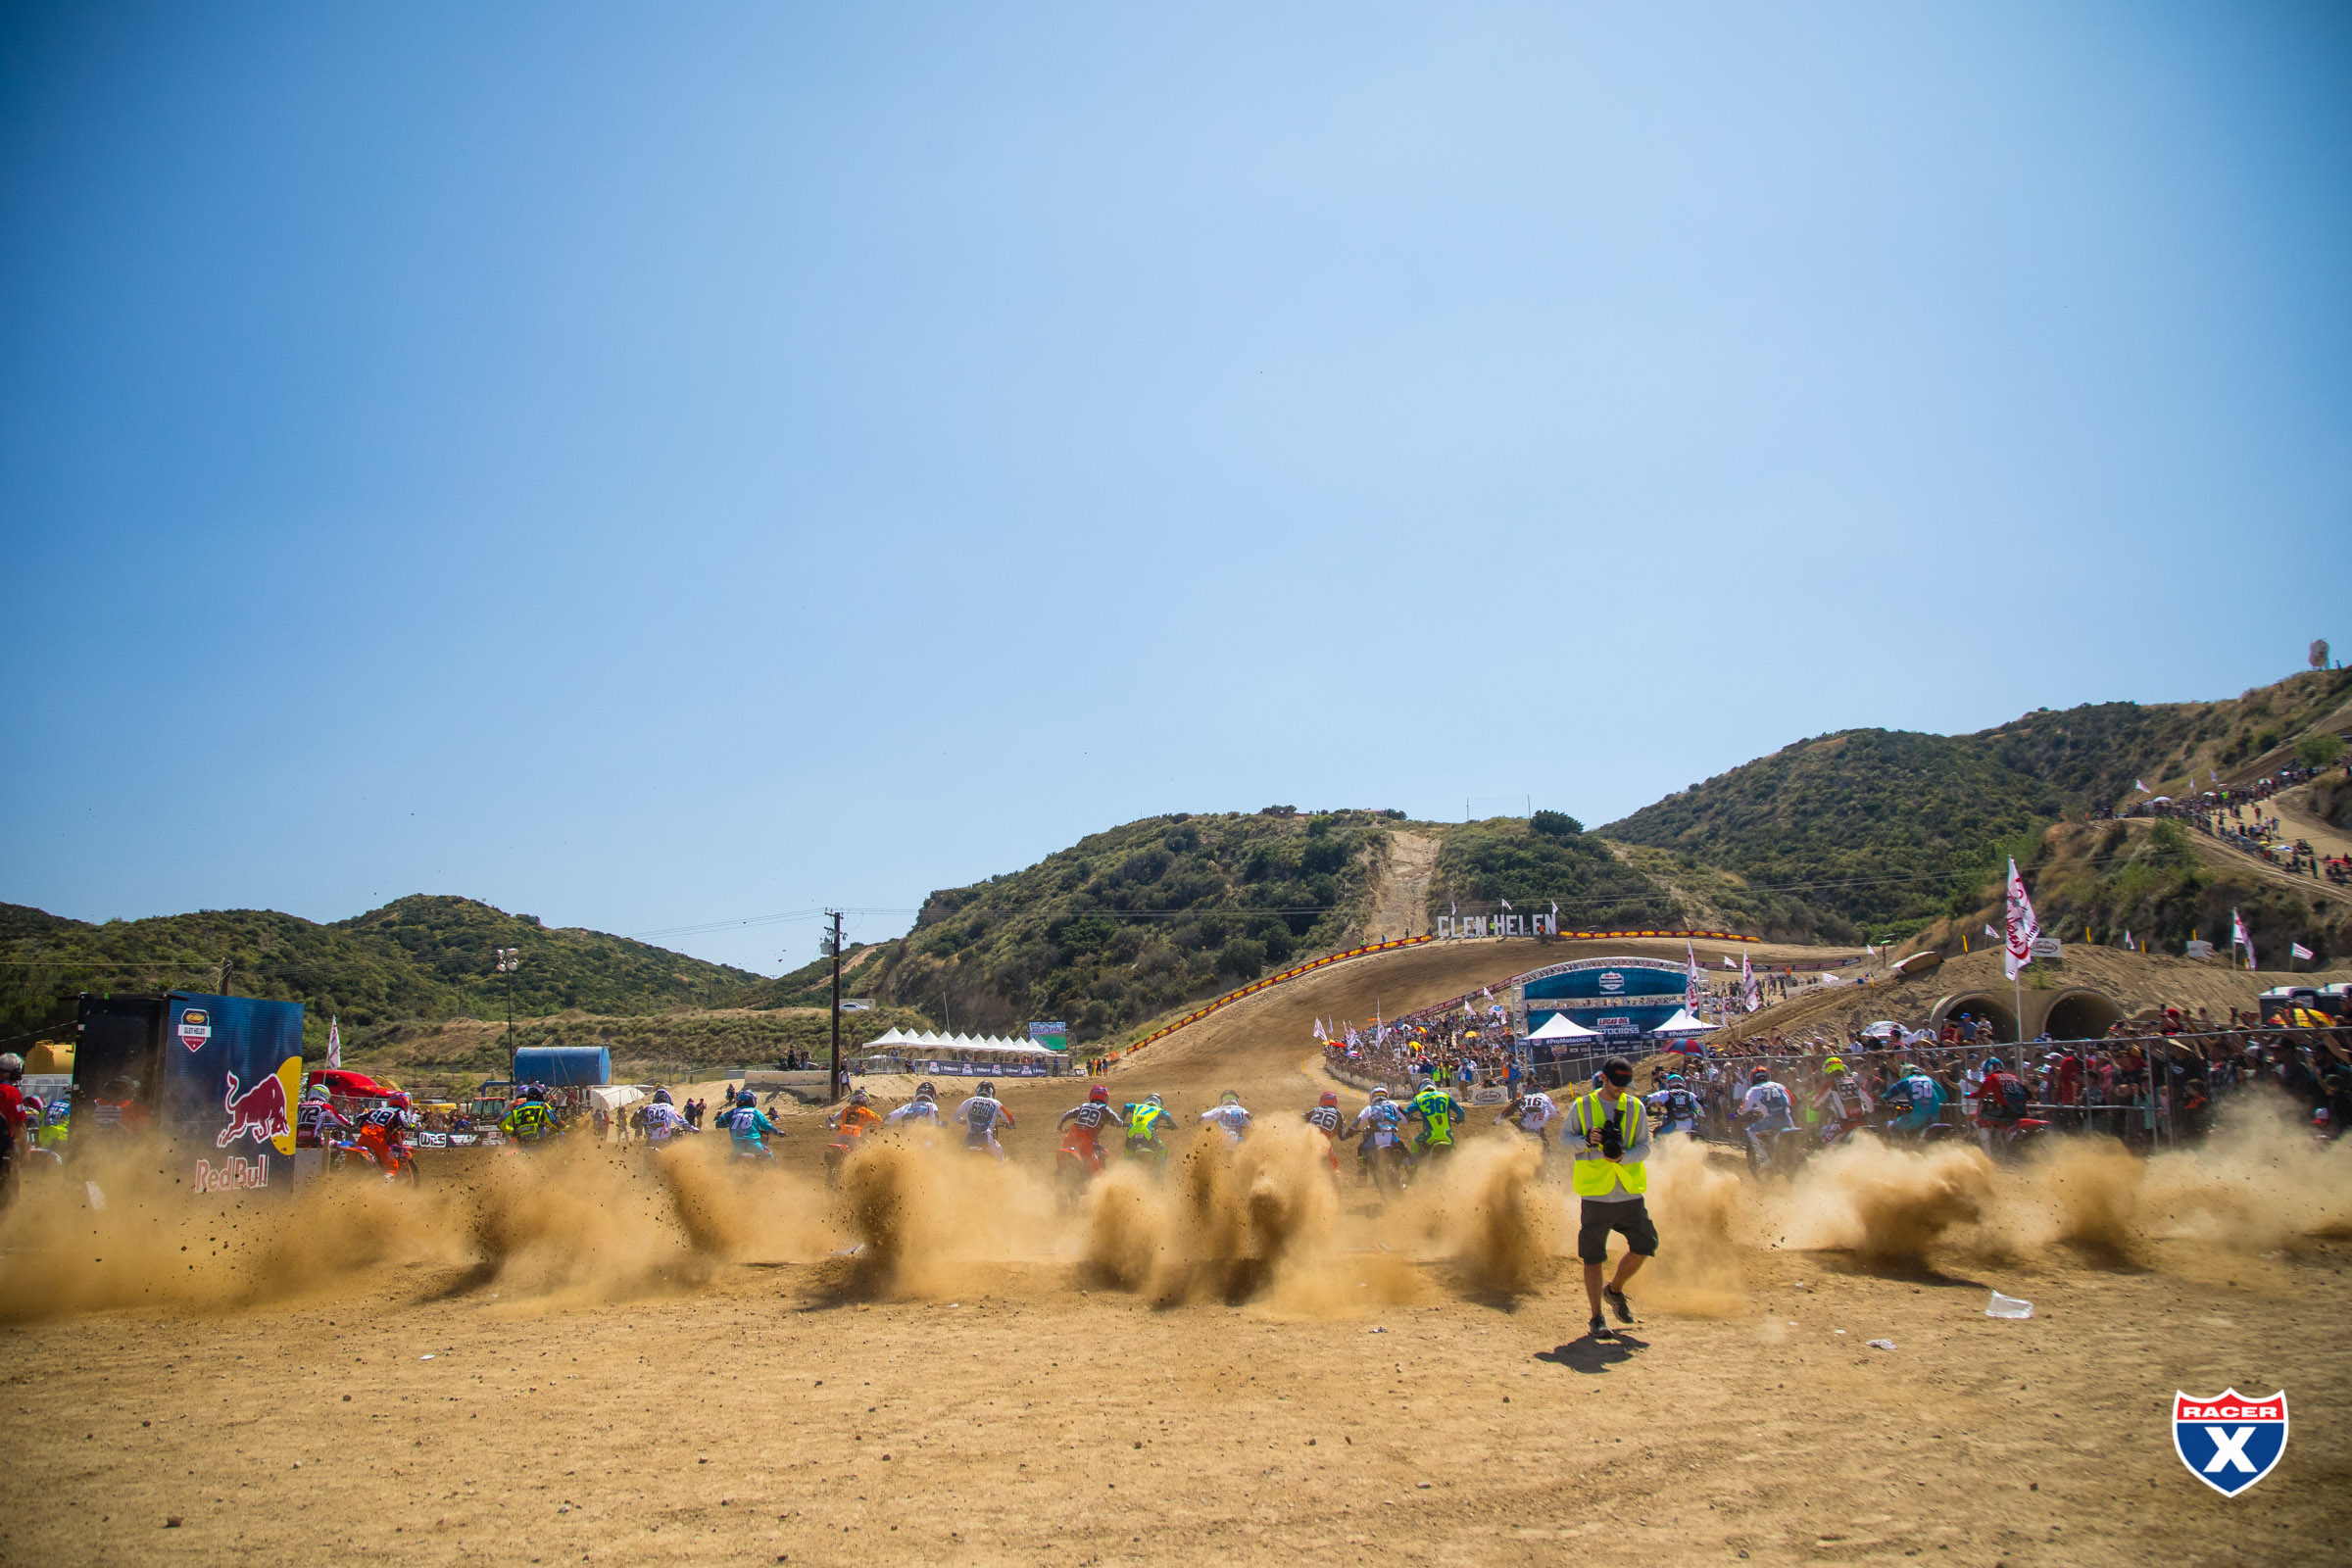 Start_MX17_GlenHelen_JK_1727